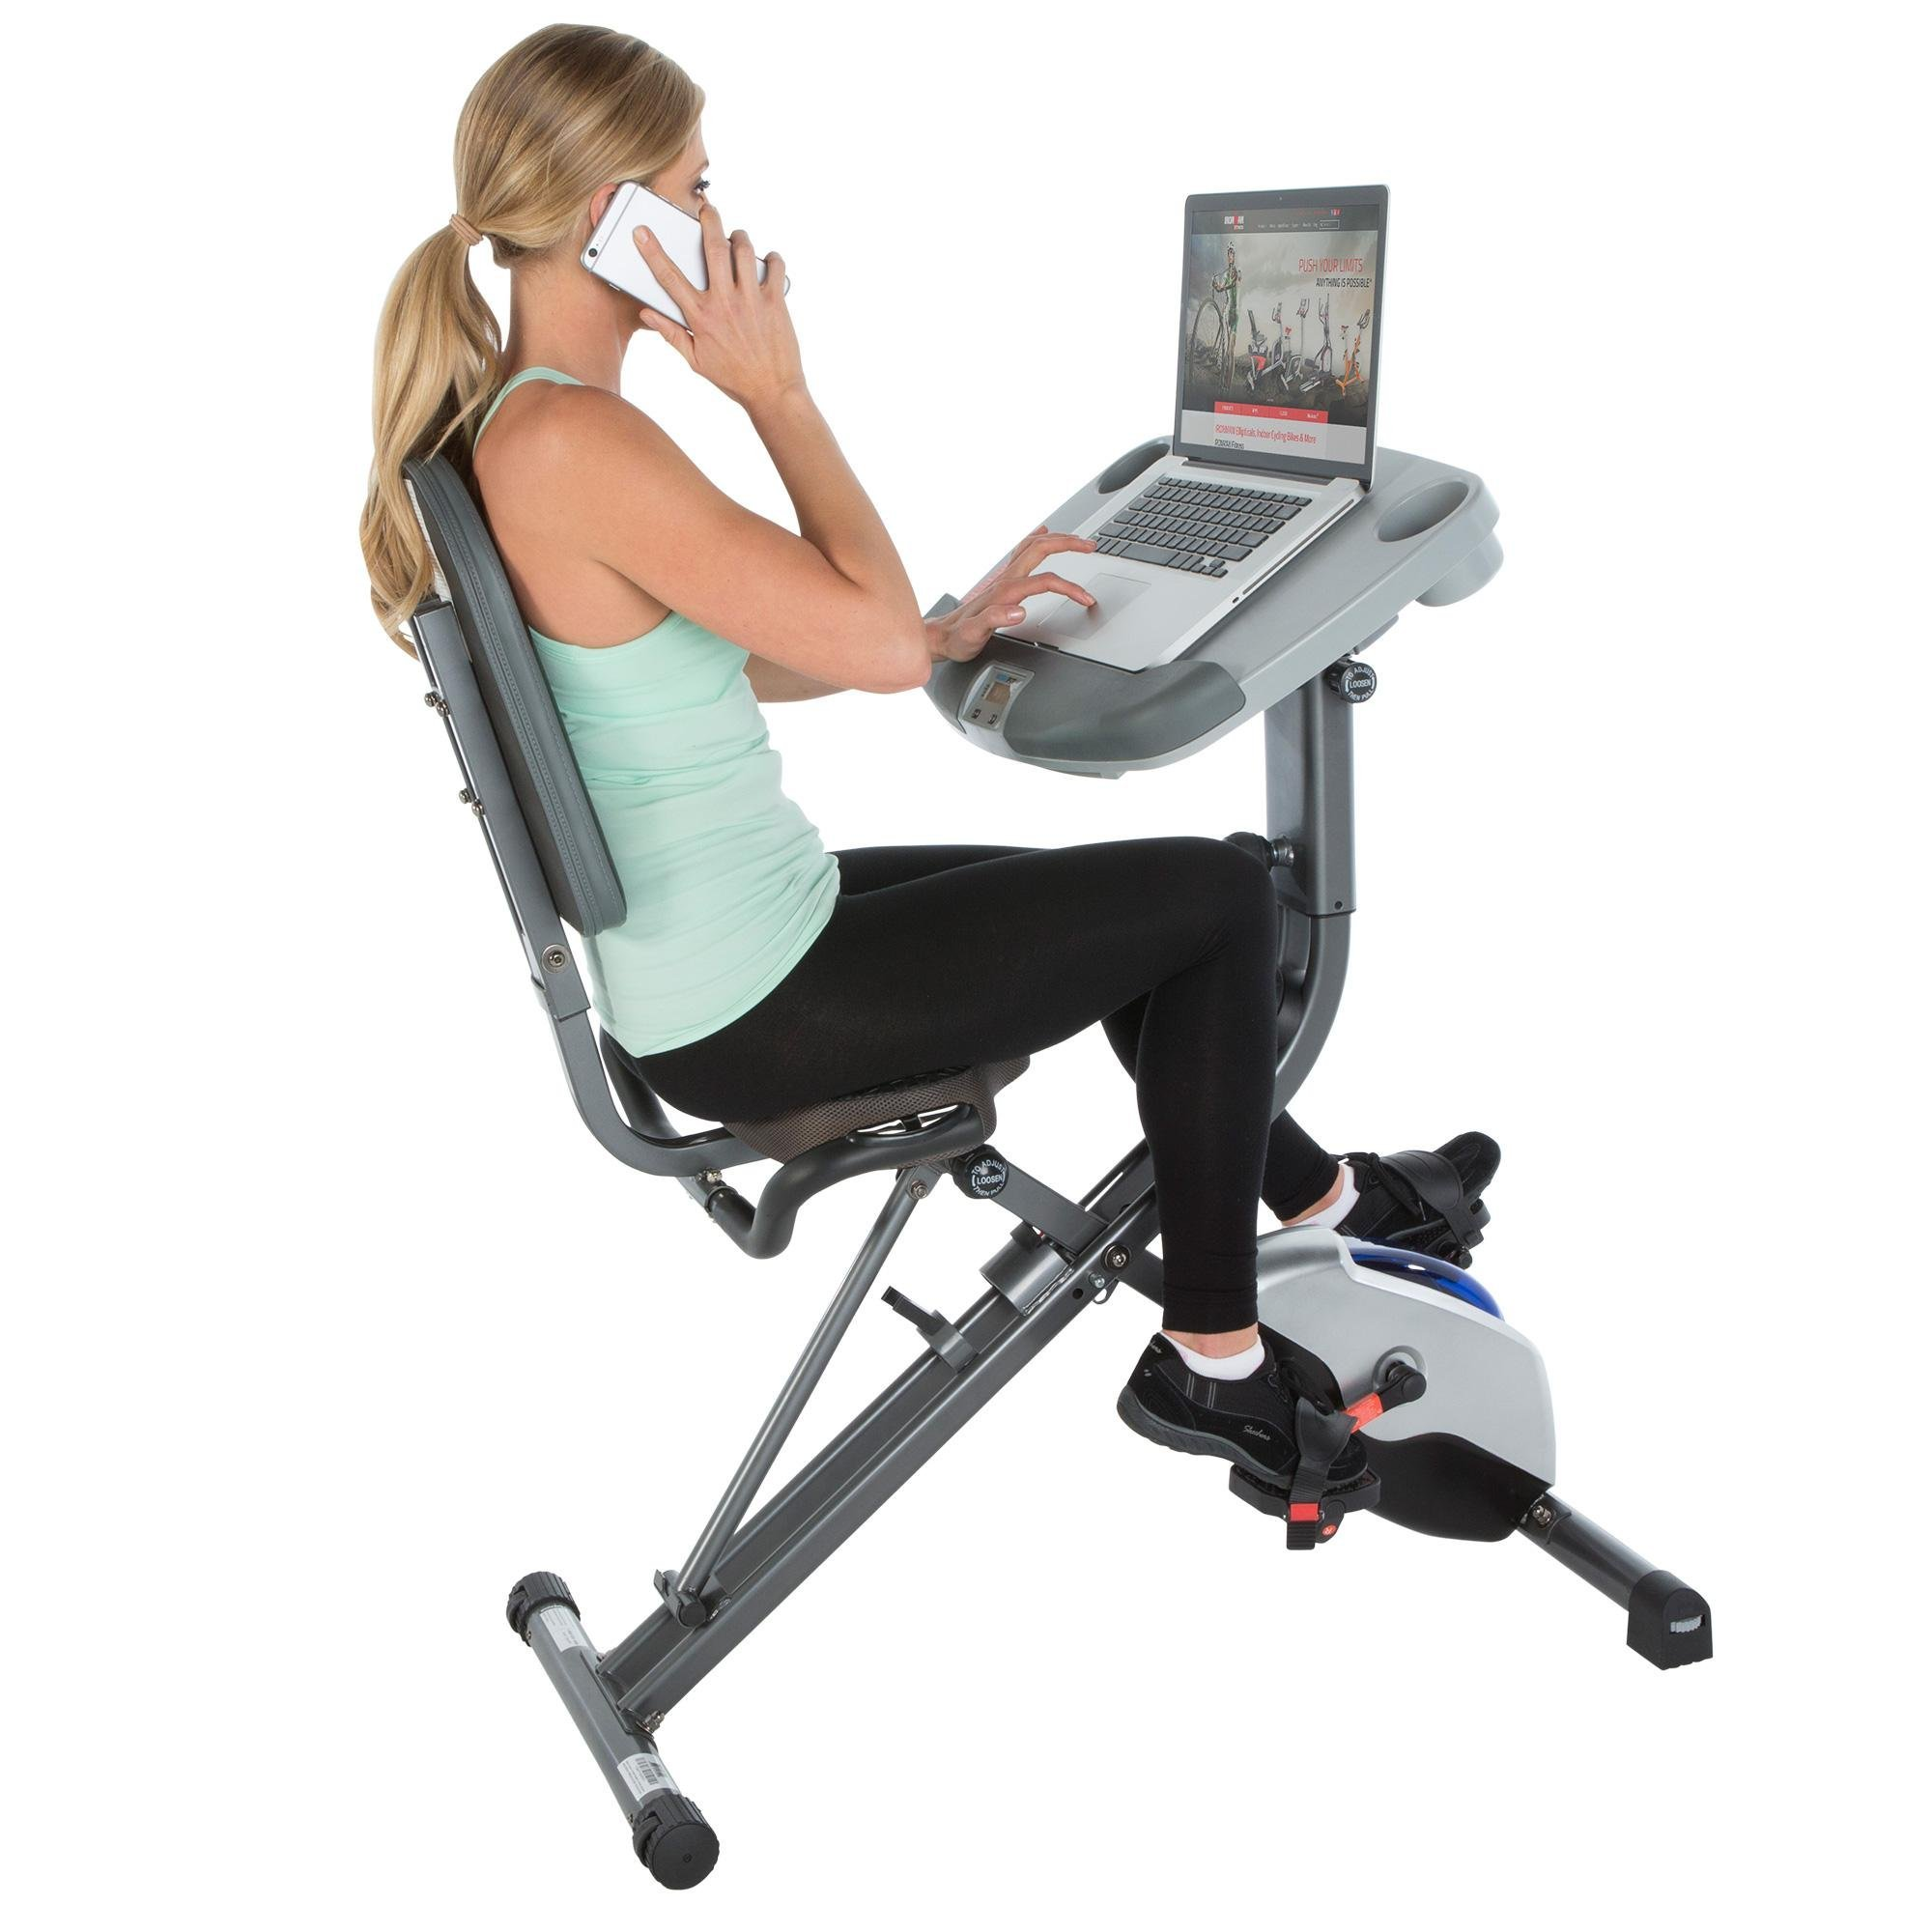 Exerpeutic WorkFit 1000 Fully Adjustable Desk Folding Exercise Bike